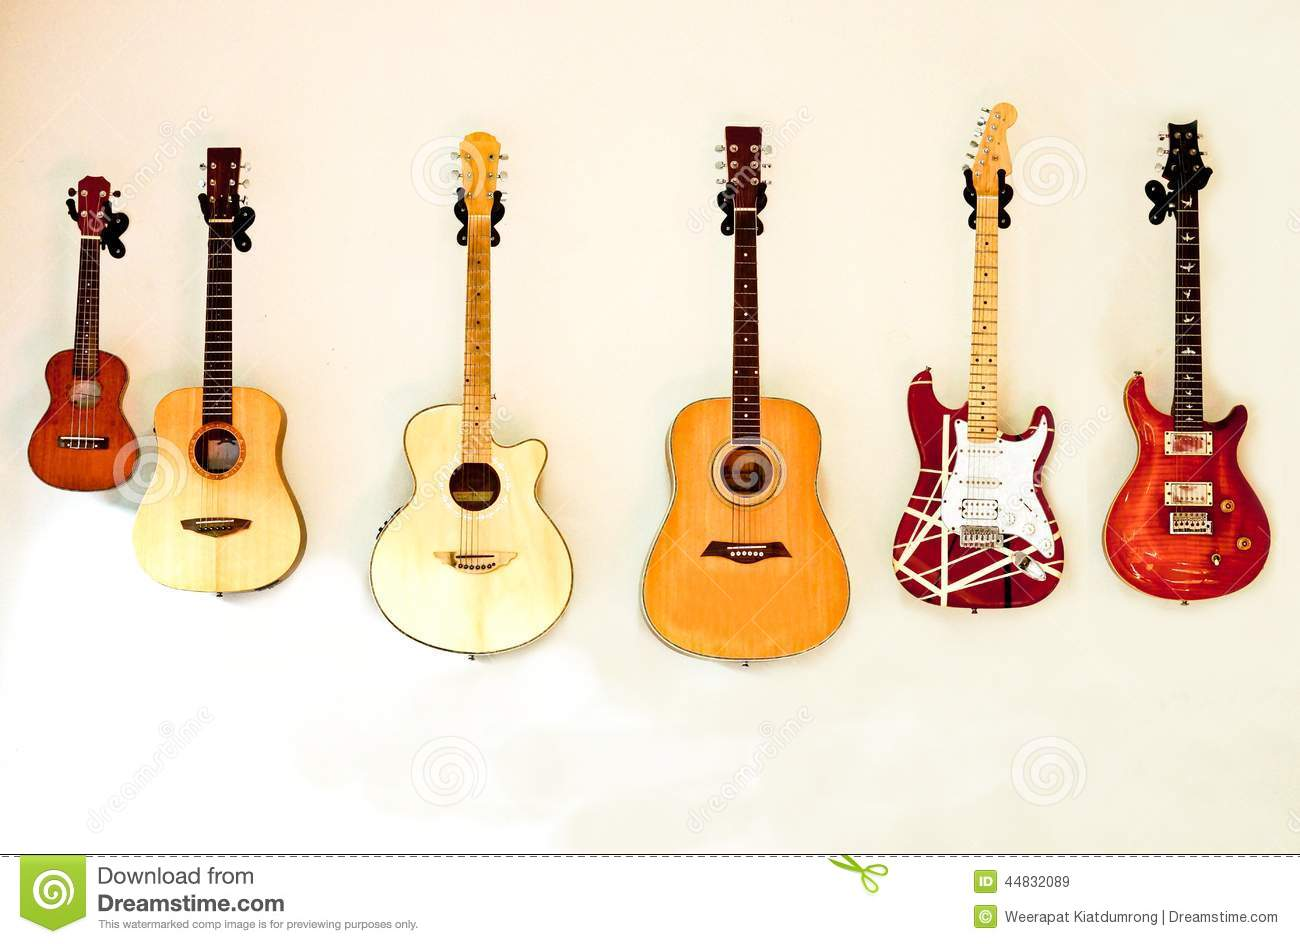 guitars stock image image of sound song wall play 44832089. Black Bedroom Furniture Sets. Home Design Ideas